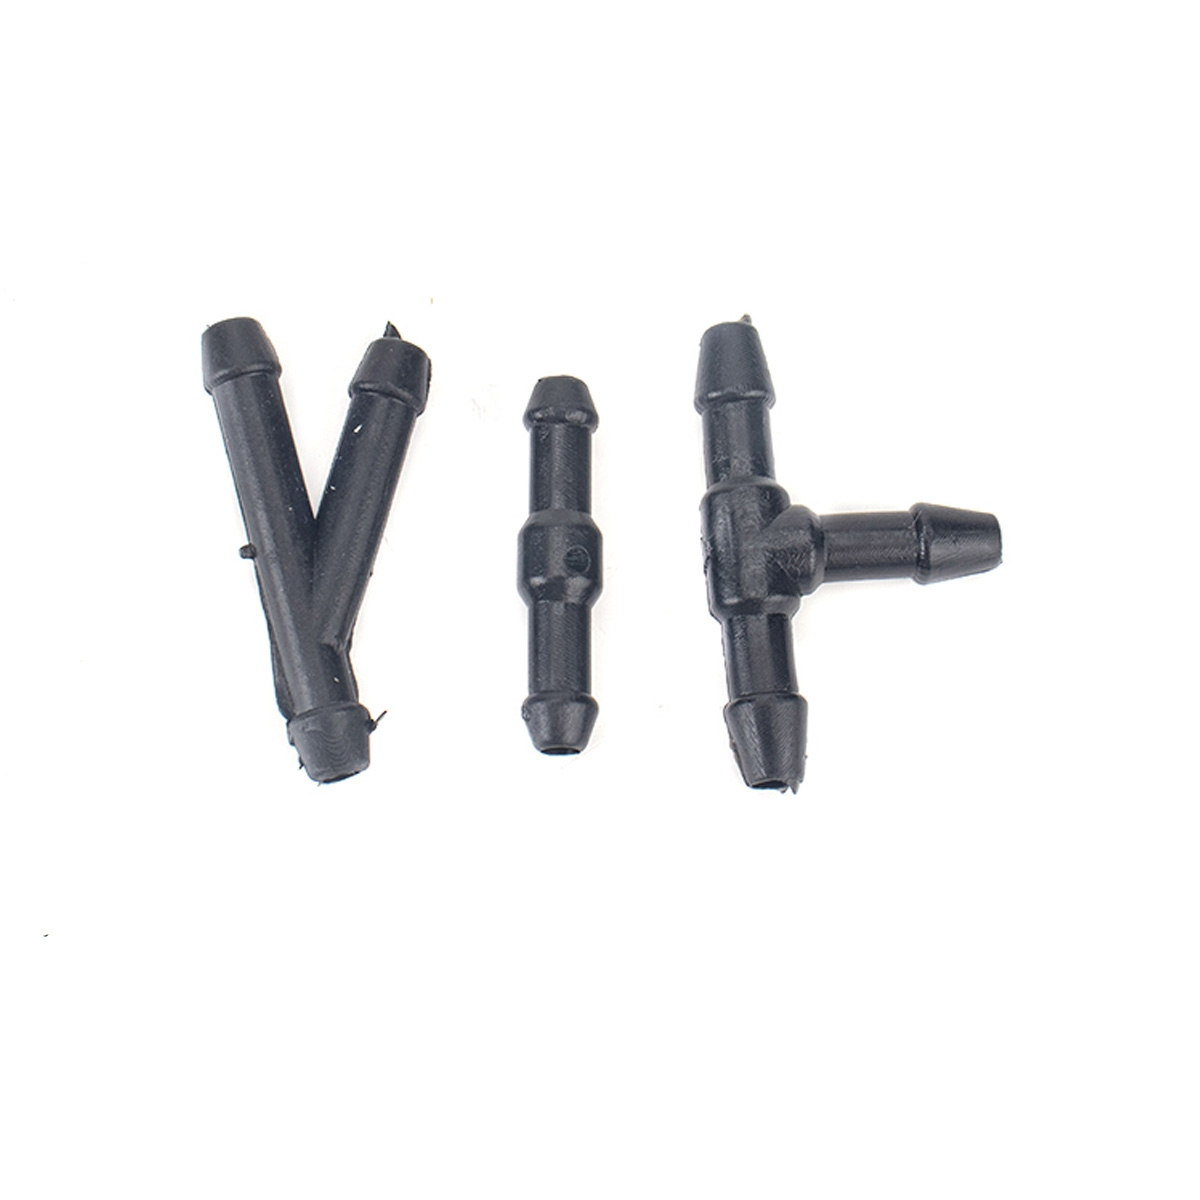 2 PCS Front Windshield Washer Wiper Jet Water Spray Nozzle + Hose Connector Set 3W7Z17603AA for Ford F-150